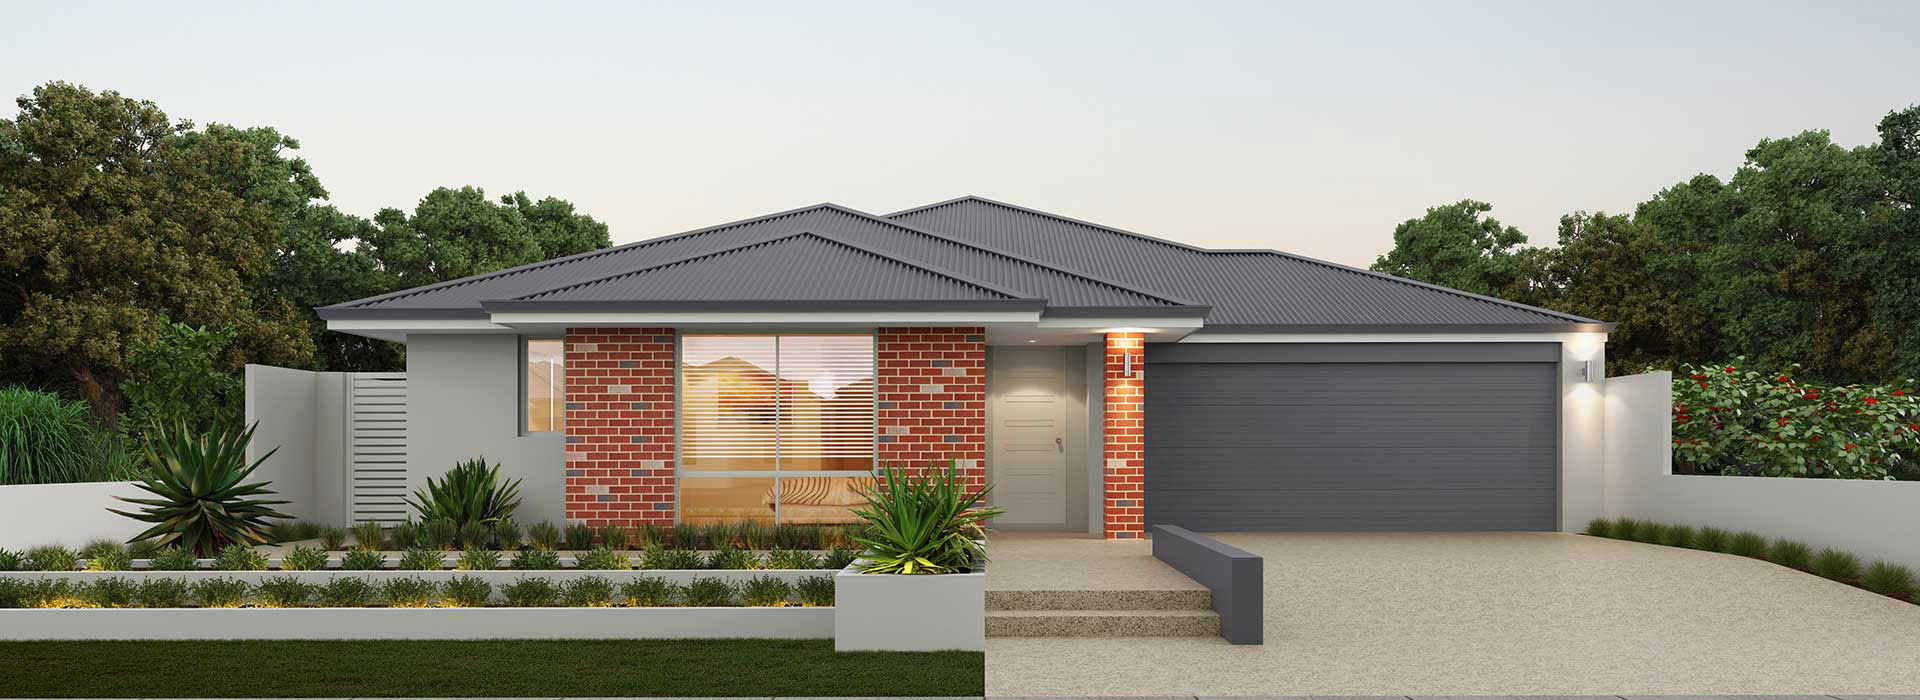 "Home frontage of single storey ""My Valencia"" house designed and built in Perth by My Homes WA"